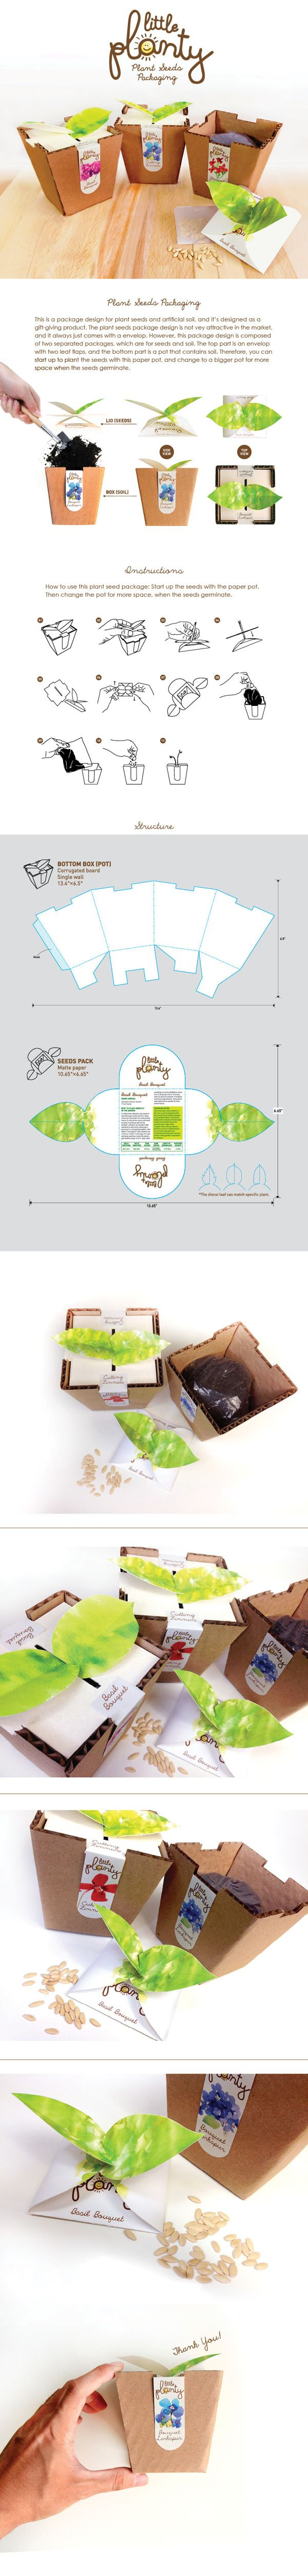 Little Planty- Plant seeds package design by CHENGWEN fung, via Behance #packaging #design